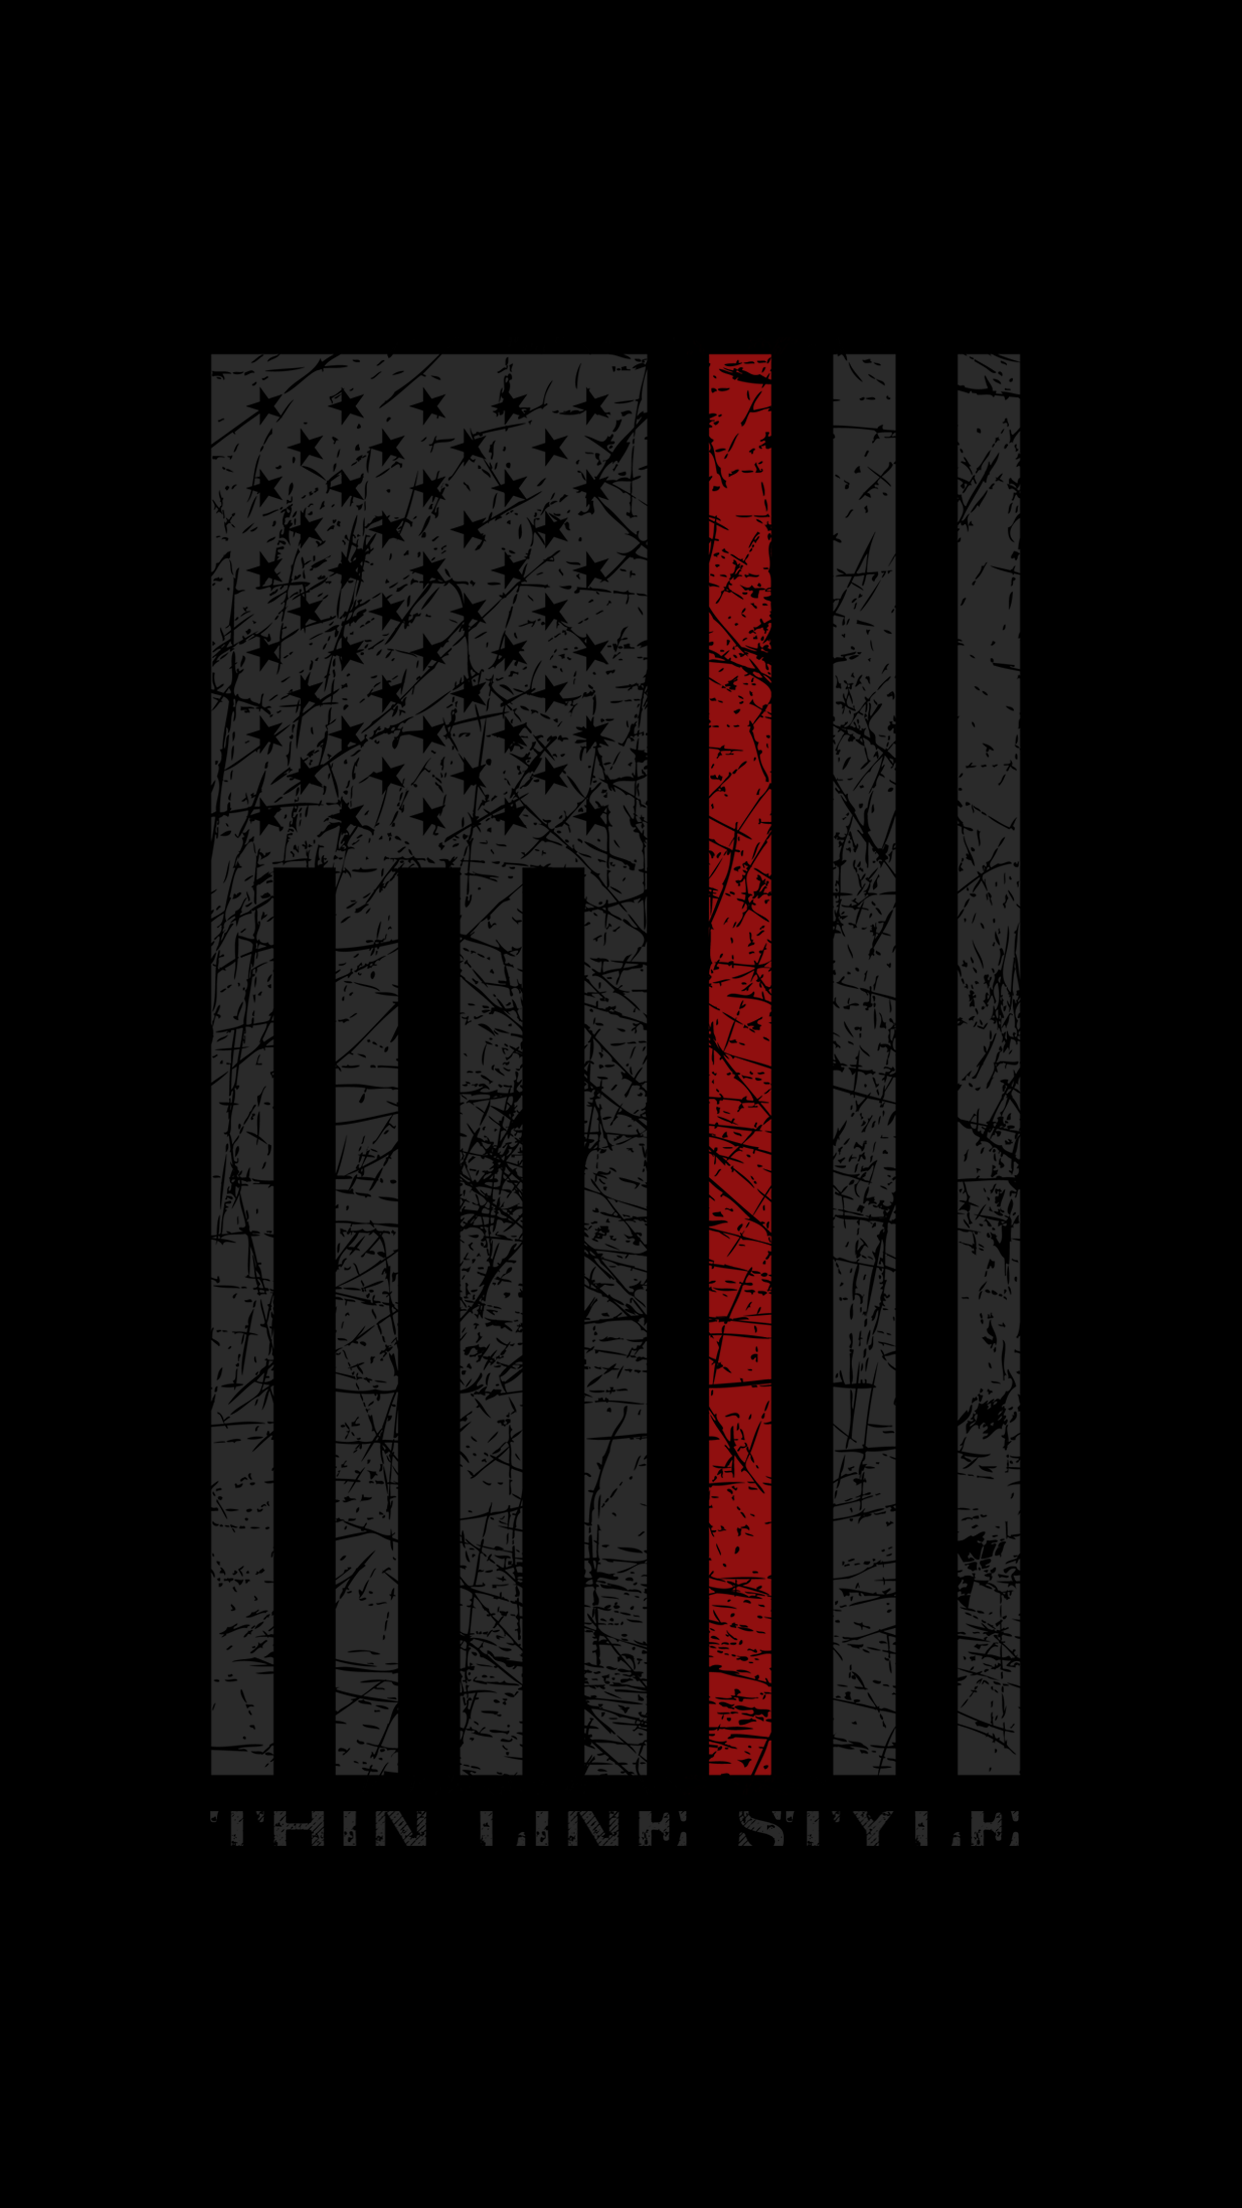 Thin Red Line, Thin Blue Line